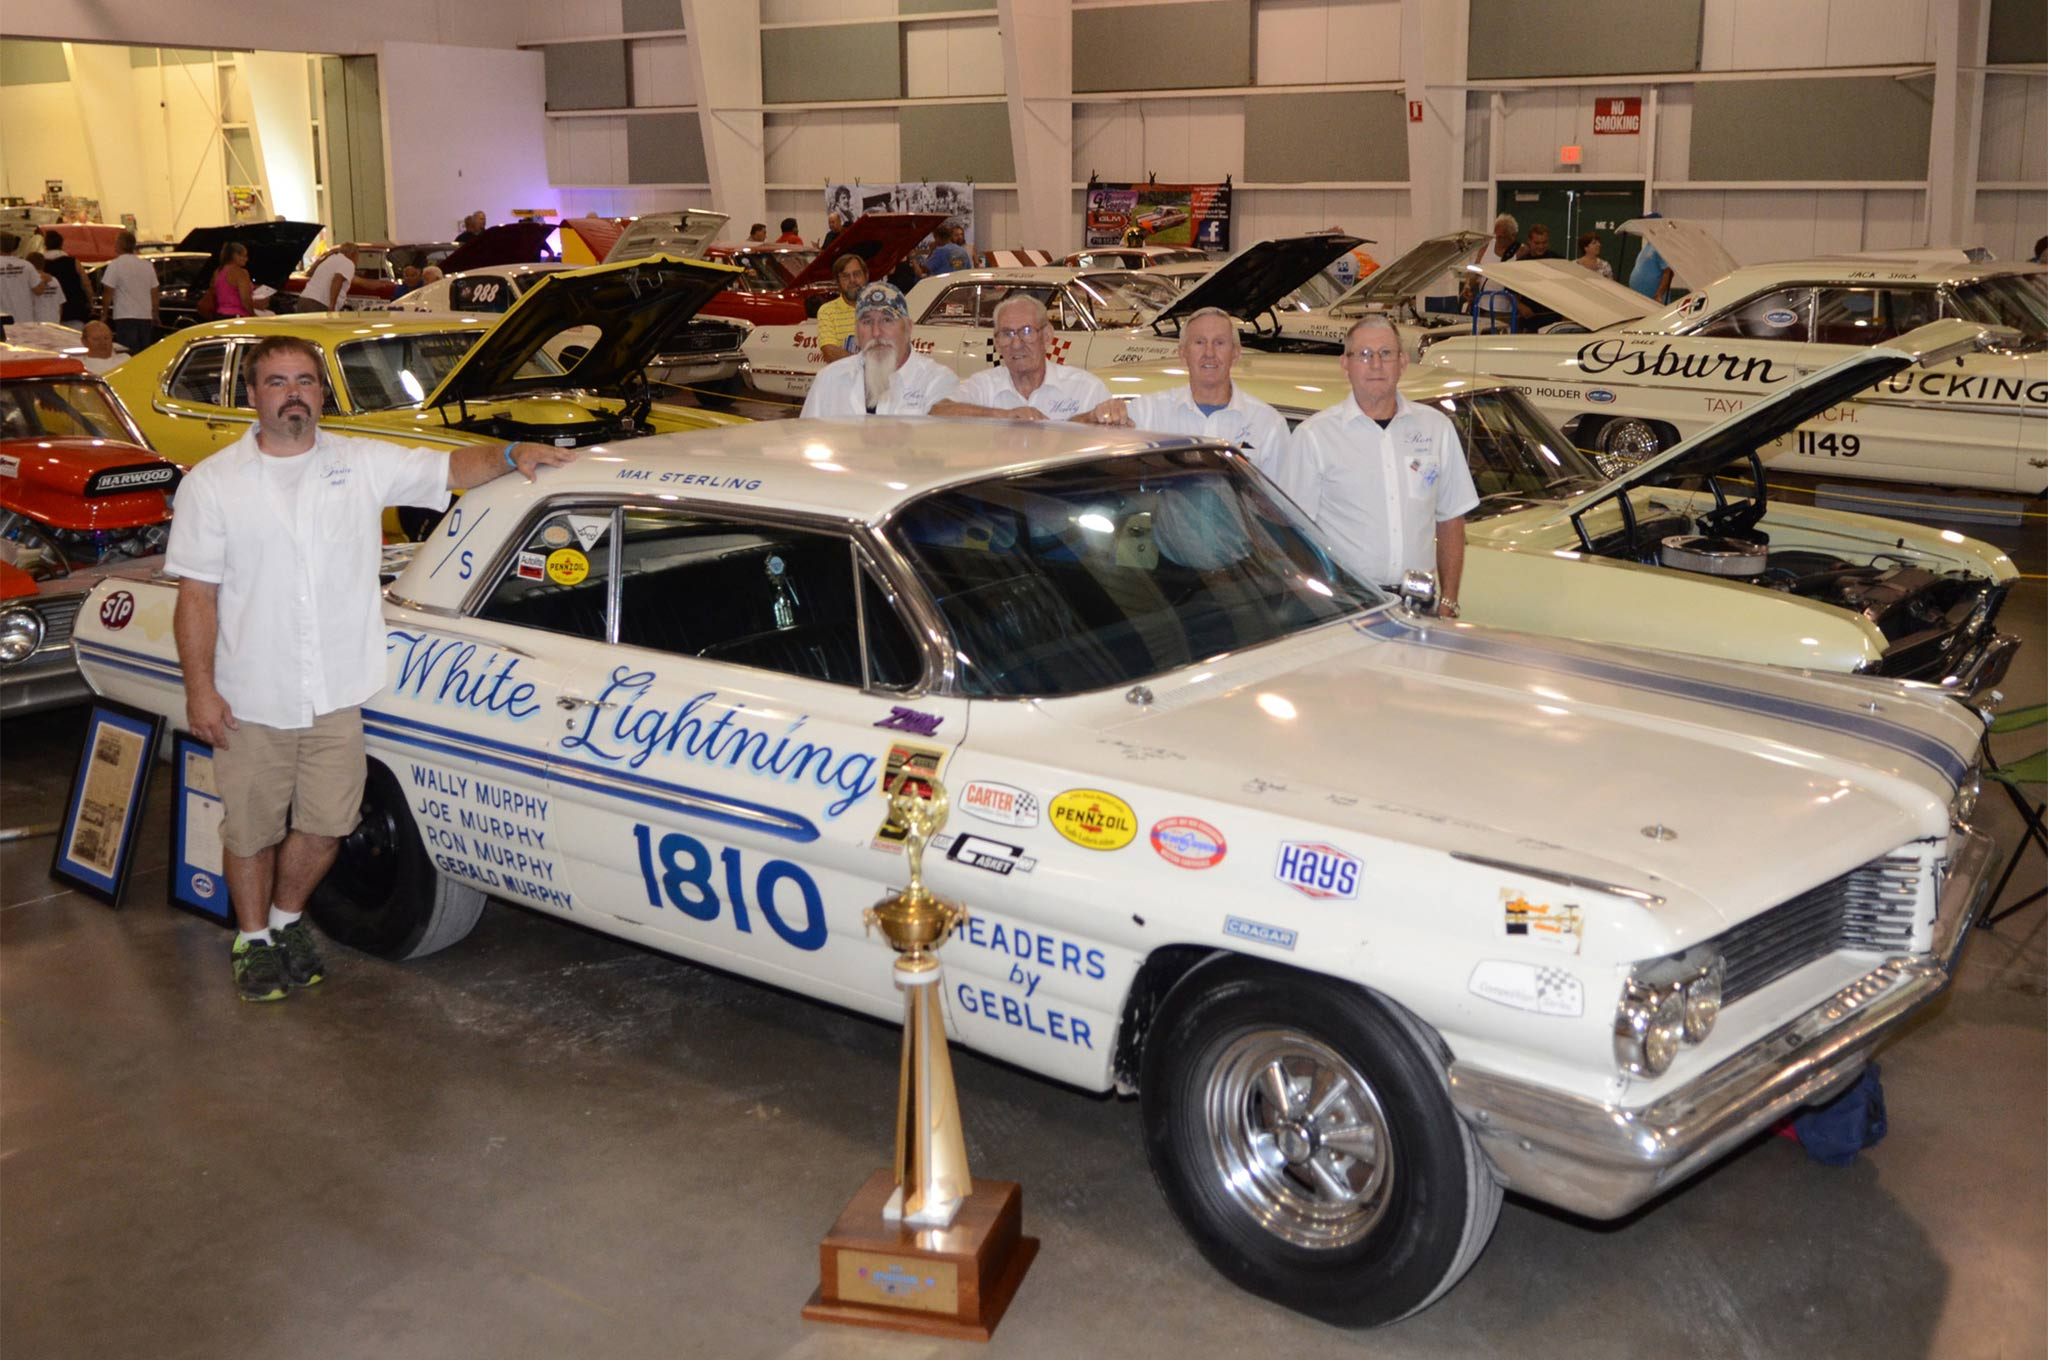 Current owner Kevin Tingler and members the Murphy family that once campaigned the D/S White Lightning 1962 lightweight Pontiac all came to York to display the original Super Duty machine.